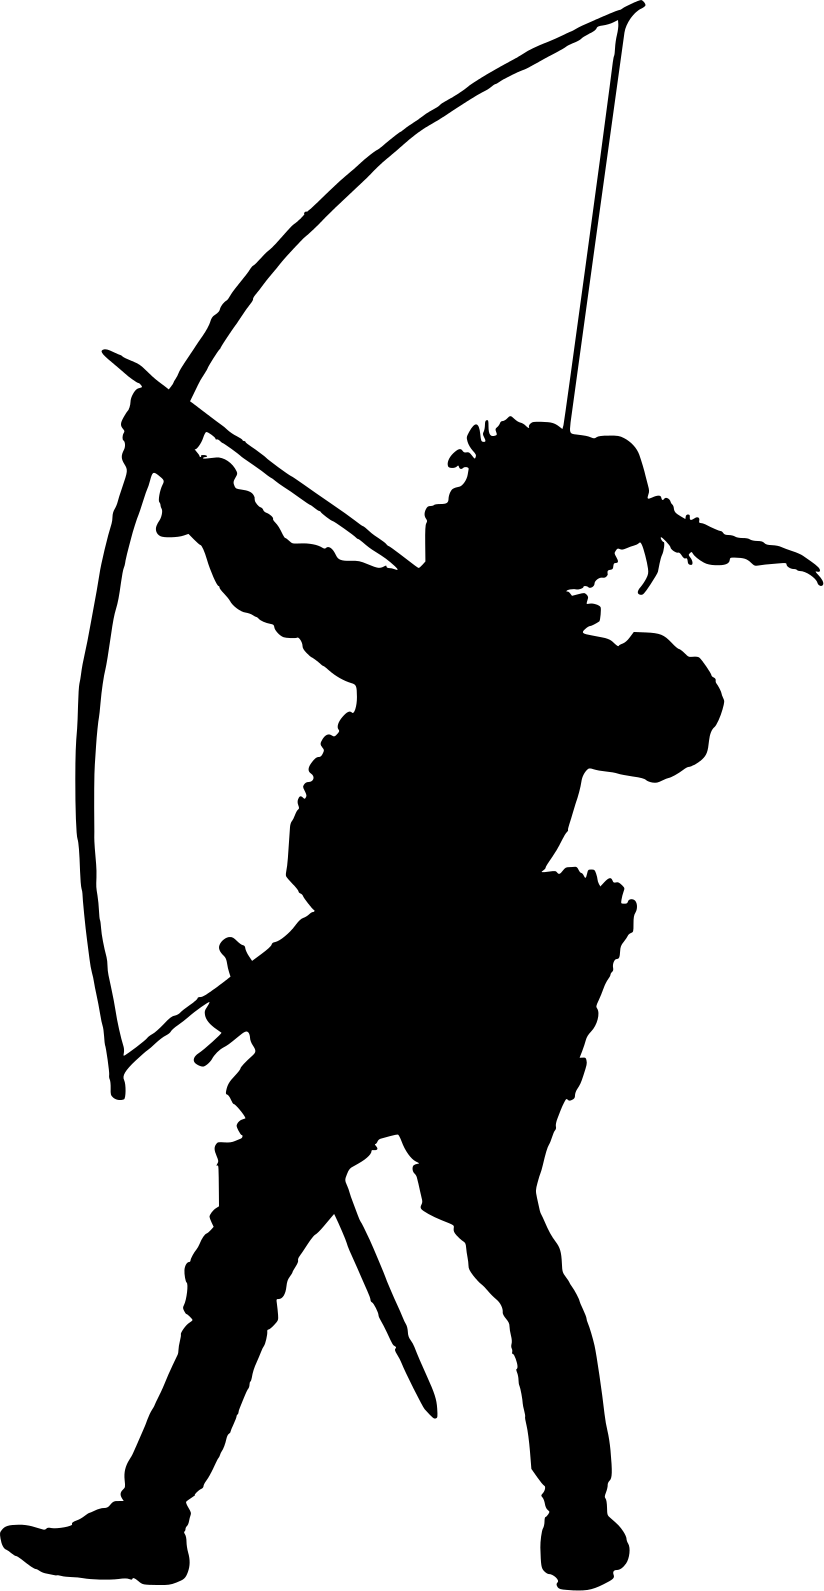 Archer clipart archer silhouette. Archery at getdrawings com